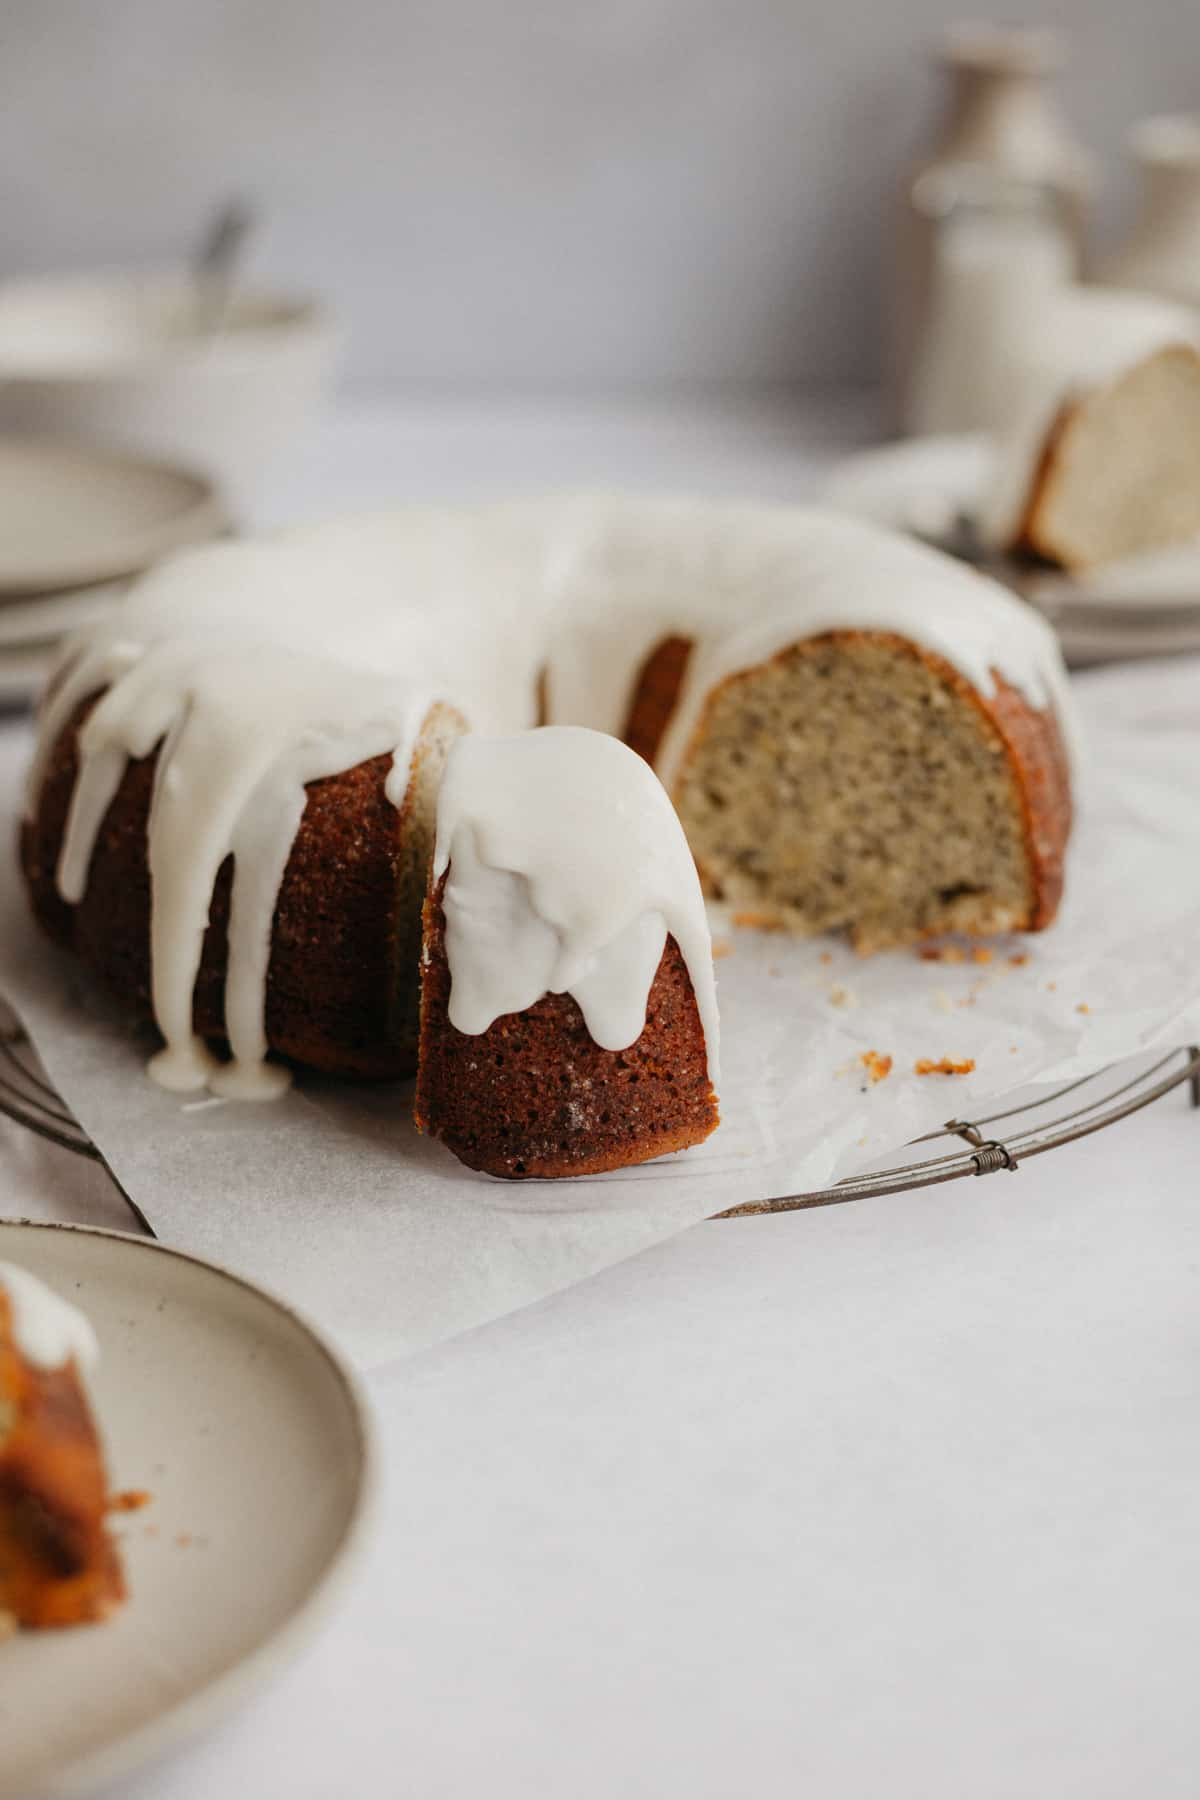 A lemon poppy seed cake with a lemon glaze drizzled on top, several slices have been taken out.